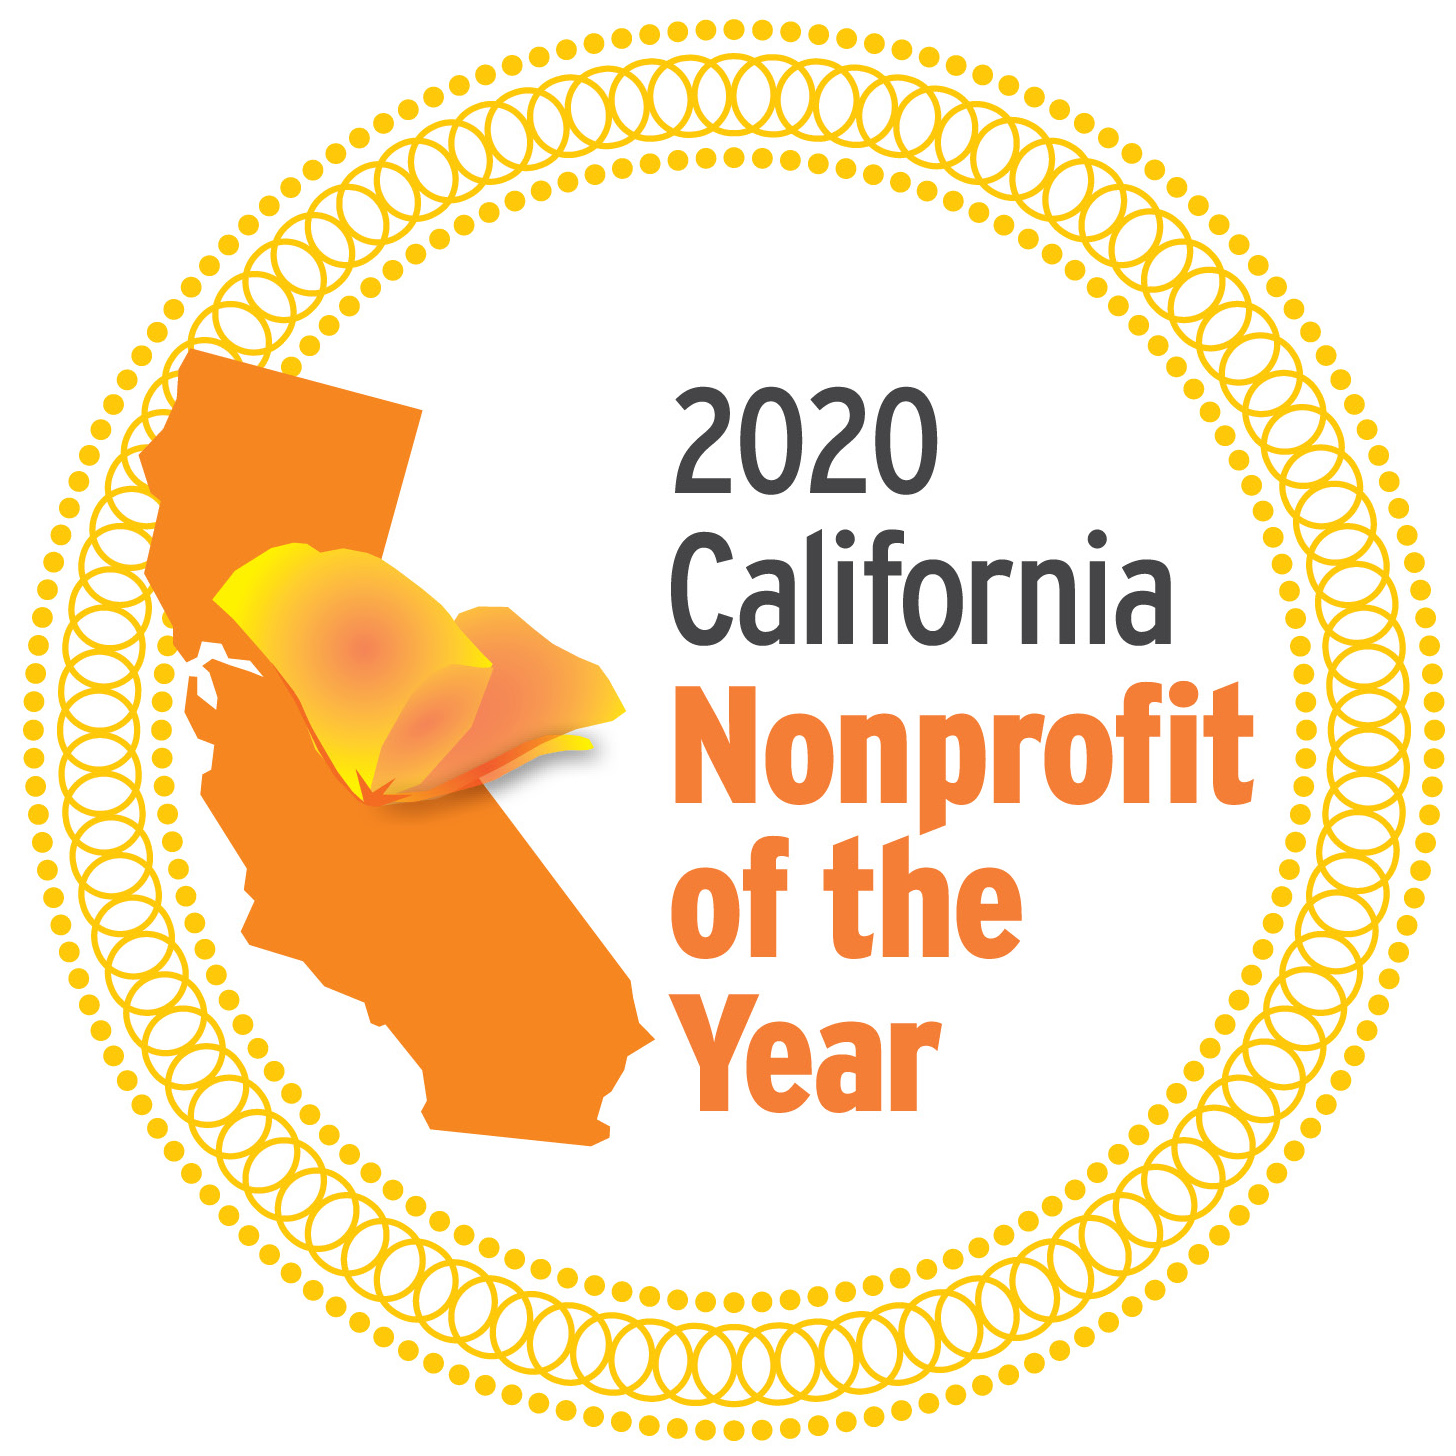 CA NonProfit of 2020